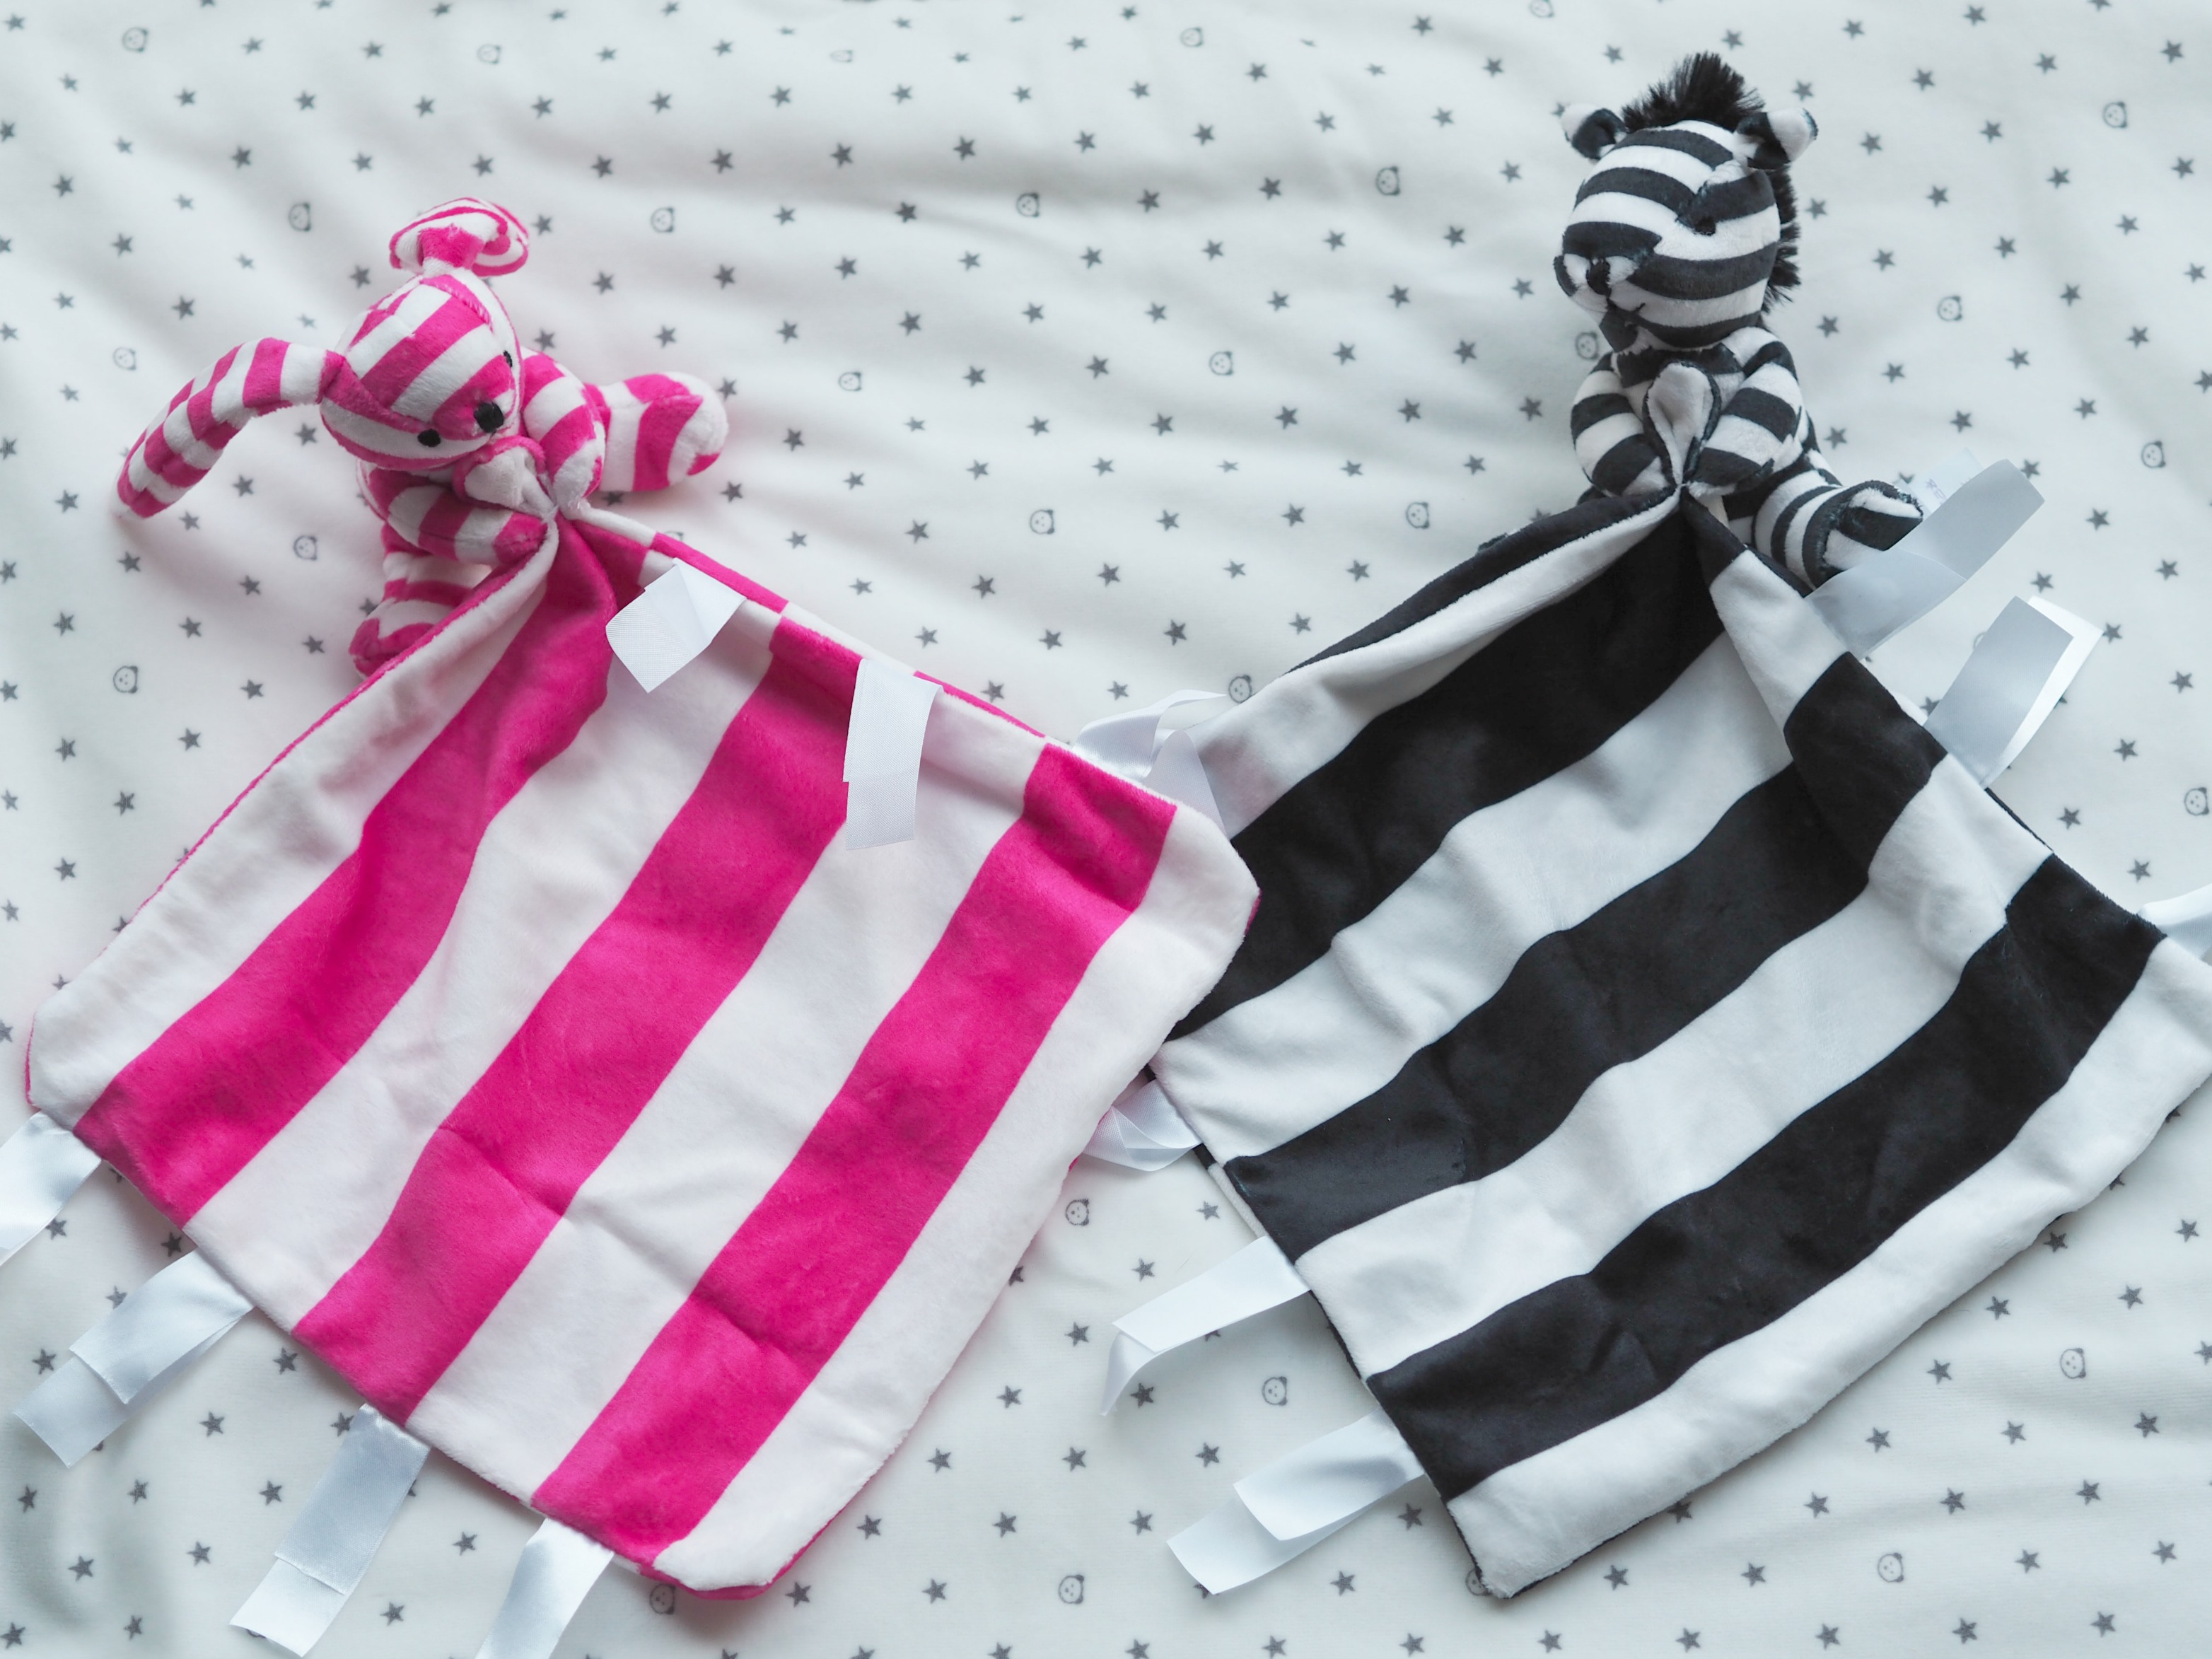 Ticklatots Tactile Soft Toys Review - black and pink